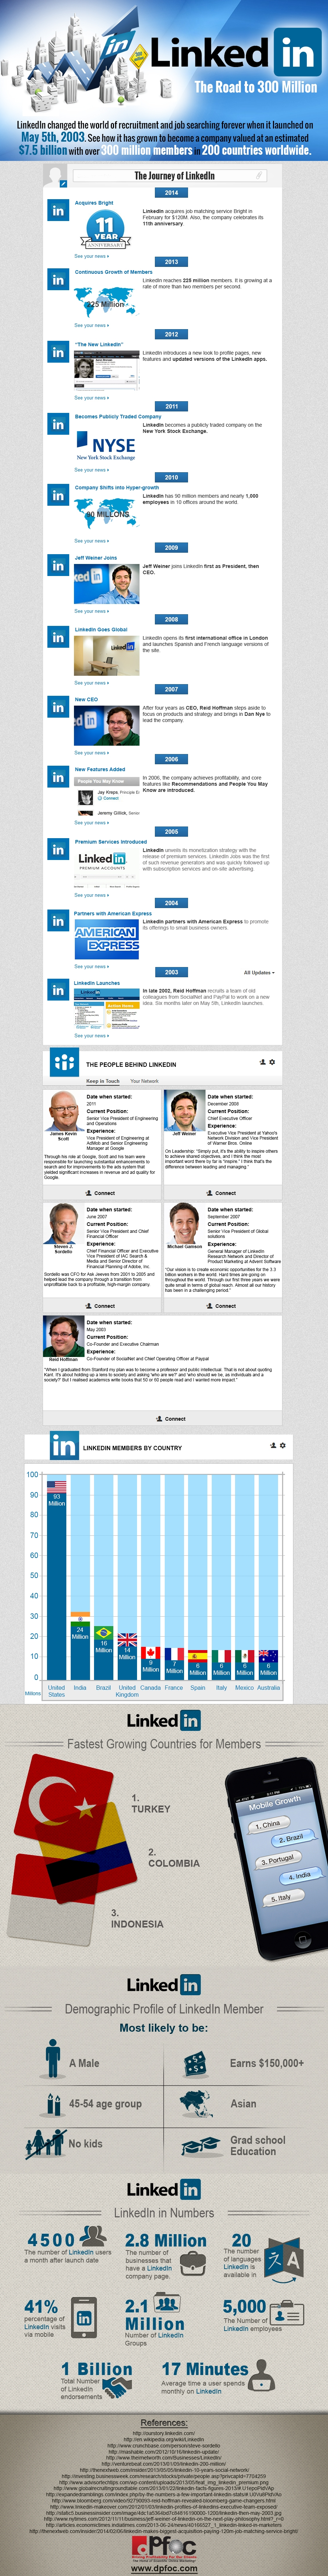 Why Use LinkedIn? 7 Reasons for Every Professional to Join